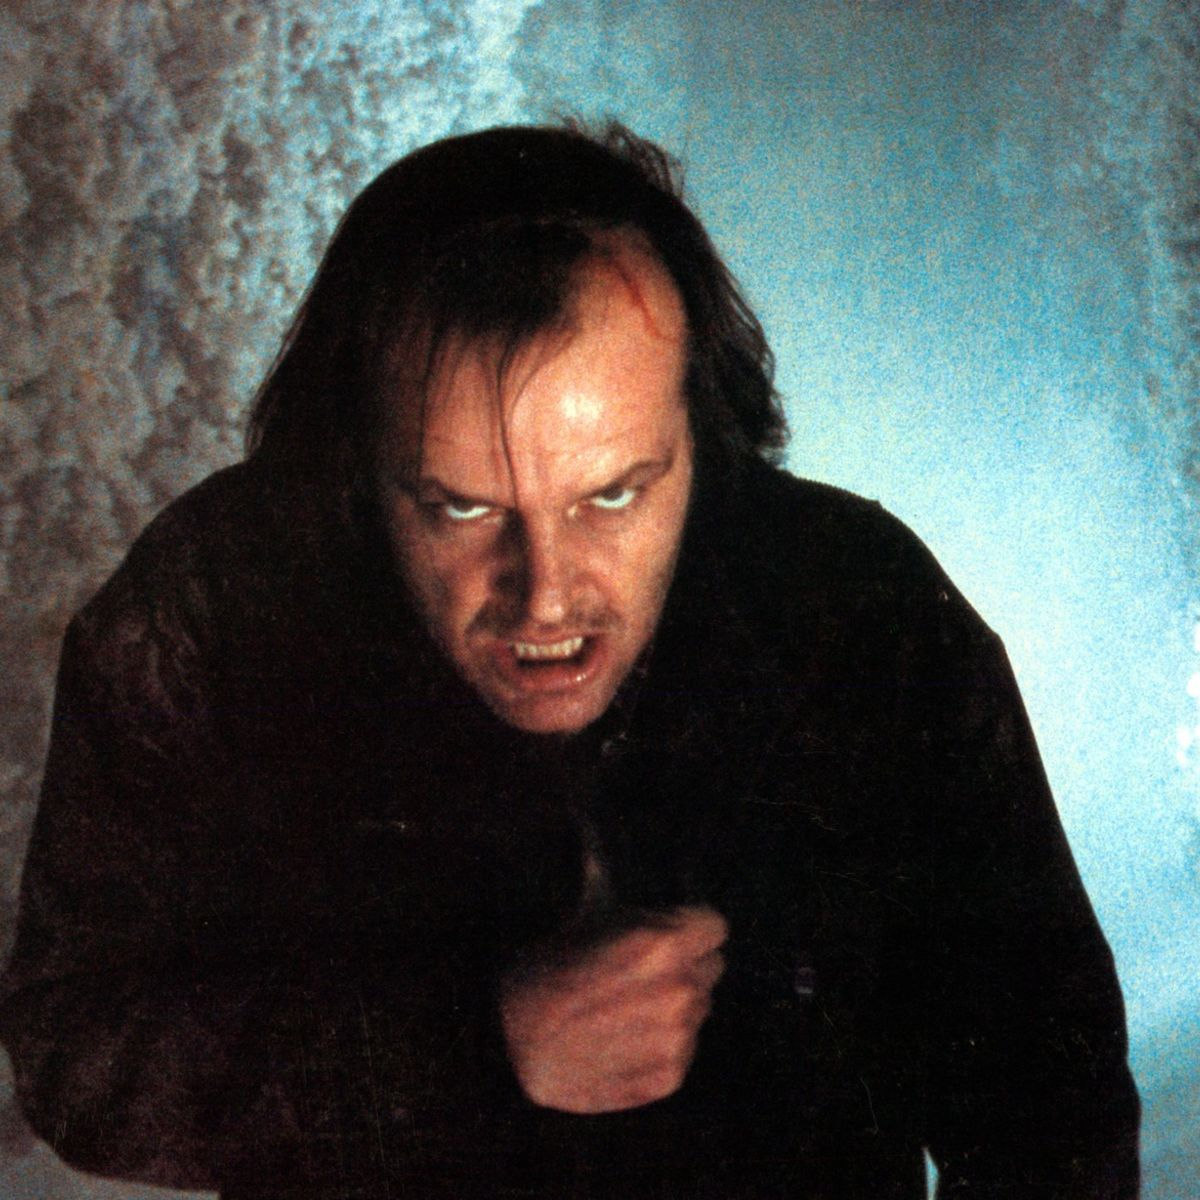 Jack Nicholson Shining the shining: from the page to the screen | syfy wire